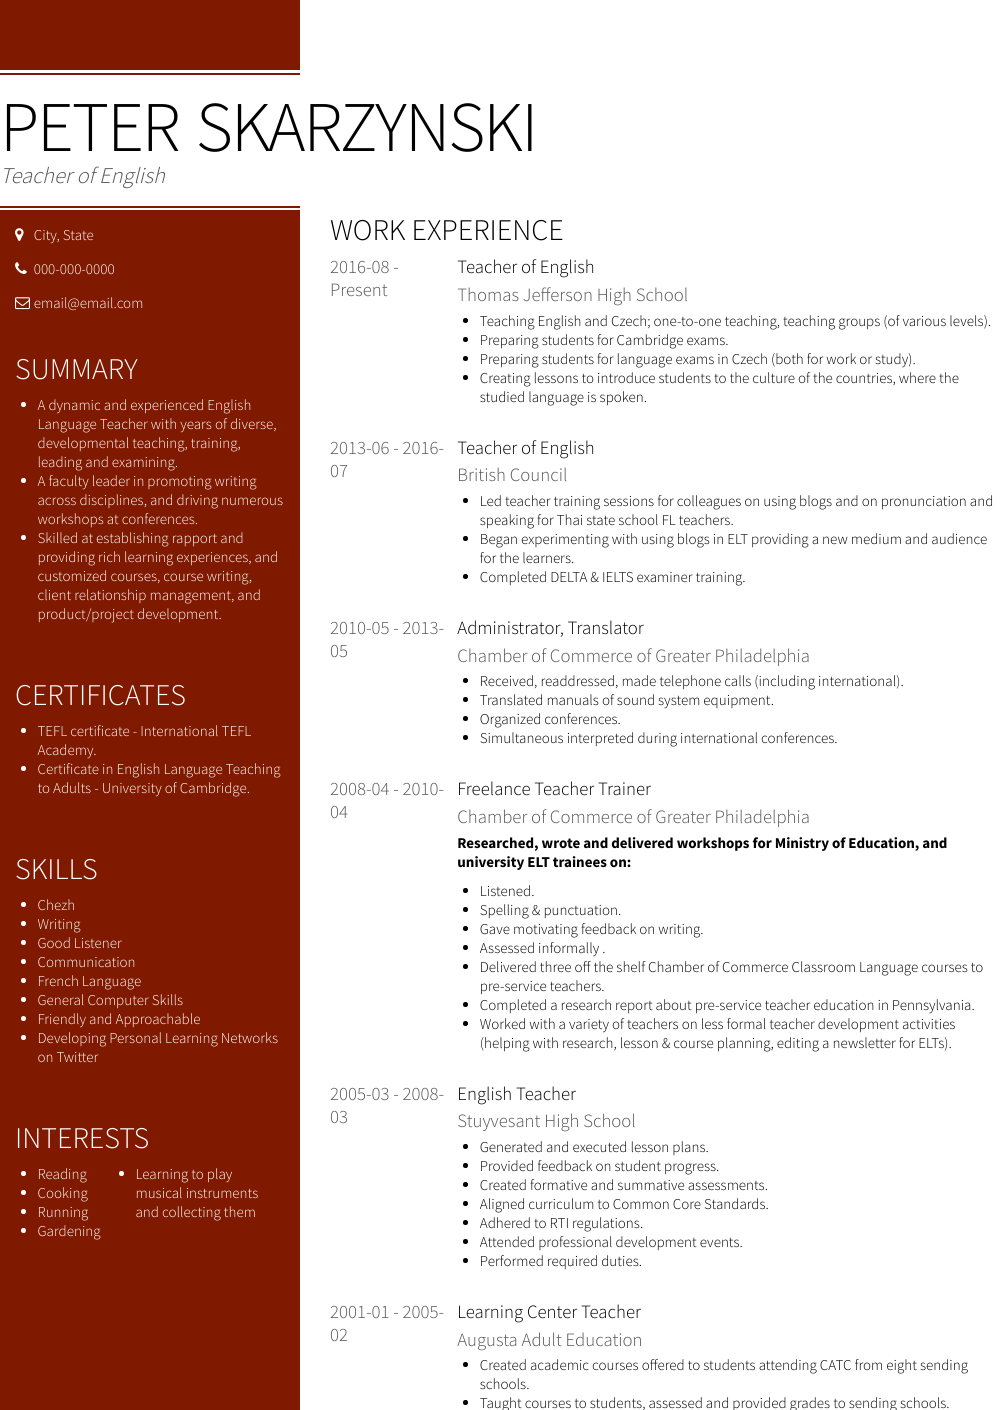 teacher resume template resume samples amp templates visualcv 14700 | teacher of english cv examples monaco